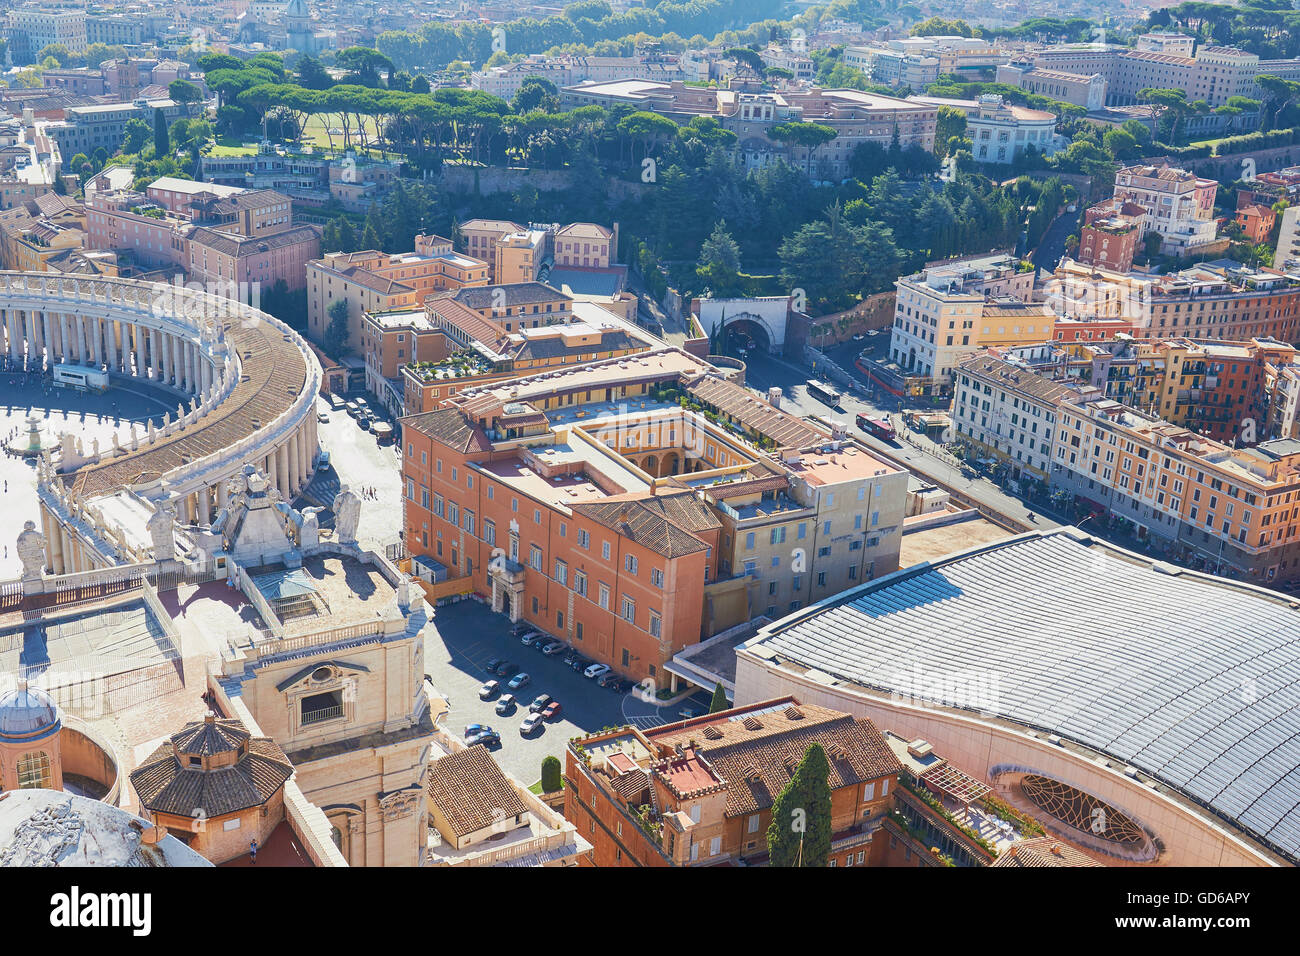 Rome cityscape with part of St Peter's Square Lazio Italy Europe - Stock Image